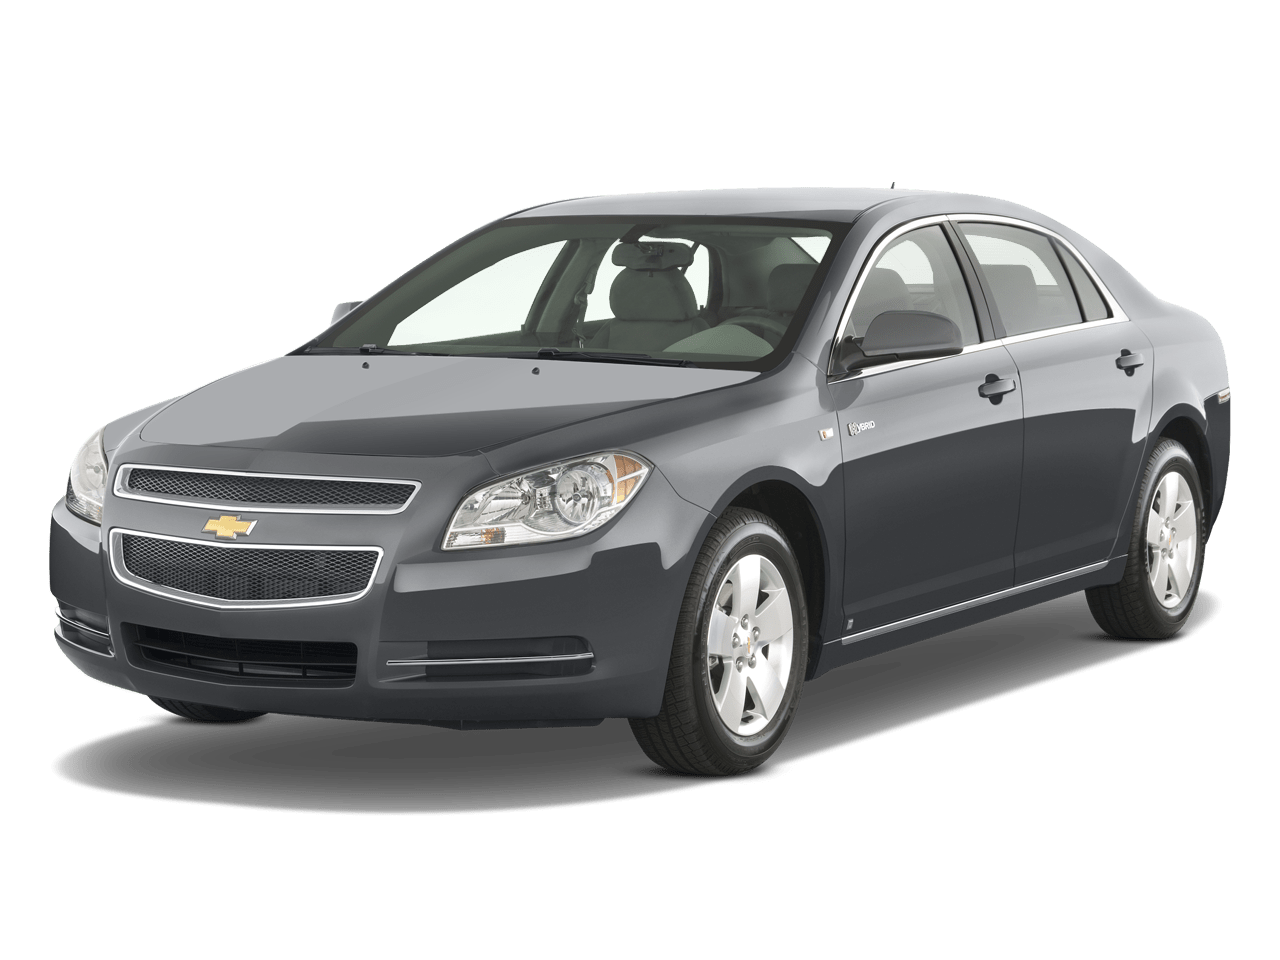 2008 chevy malibu house wiring diagram india chevrolet reviews and rating motortrend